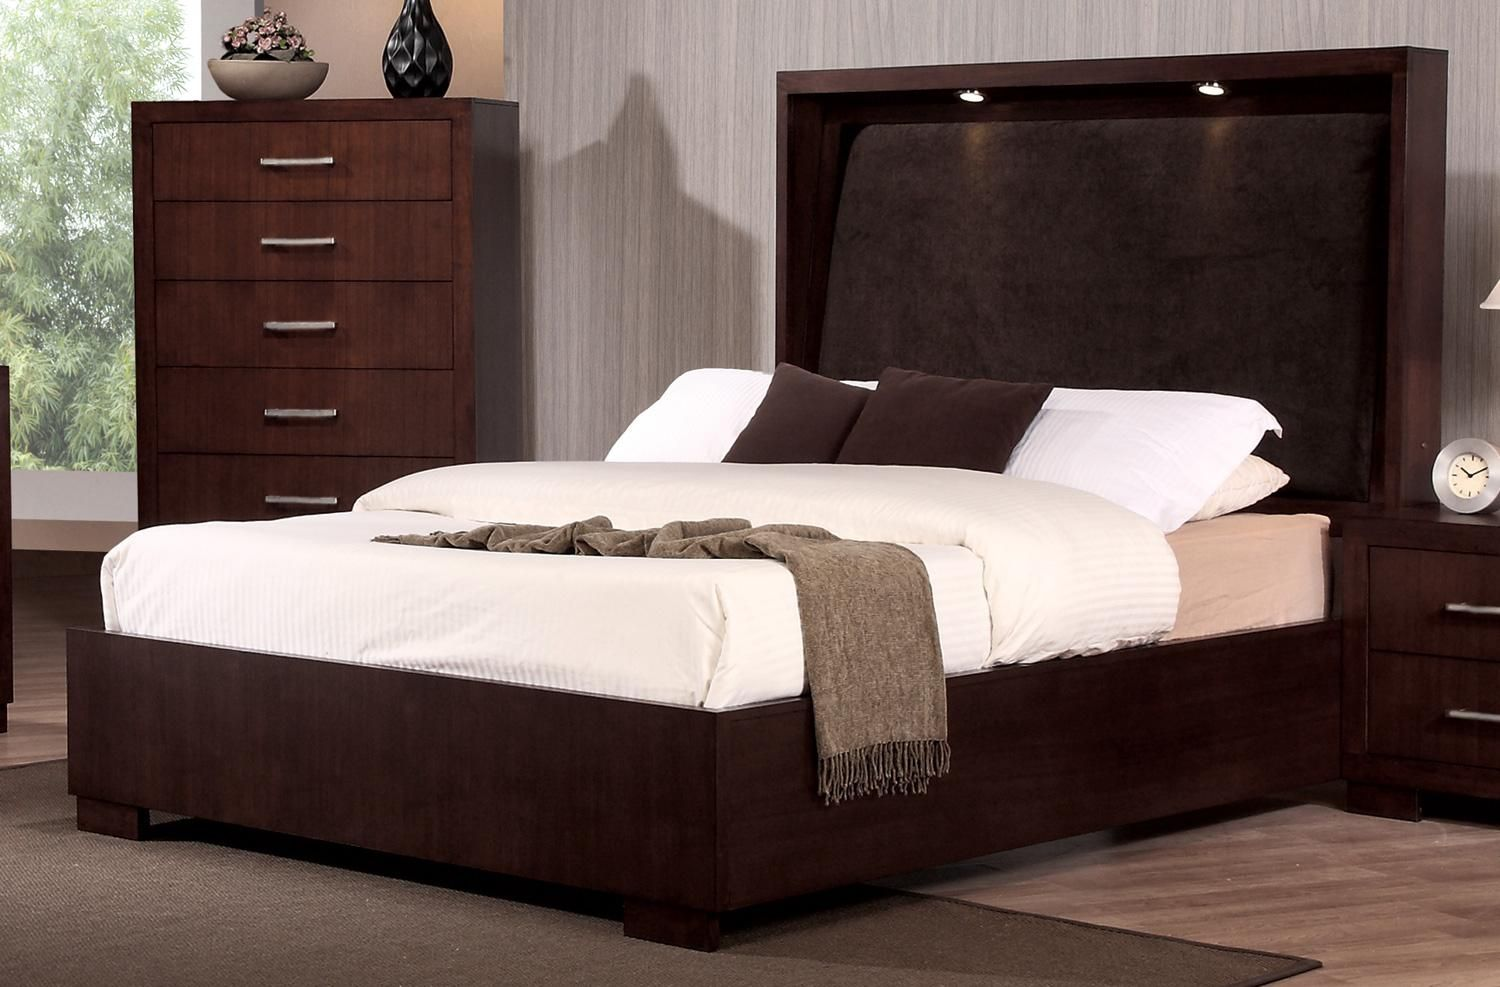 Coaster Jessica King Bed With With Built In Touch Lighting   Rooms Furniture    Headboard